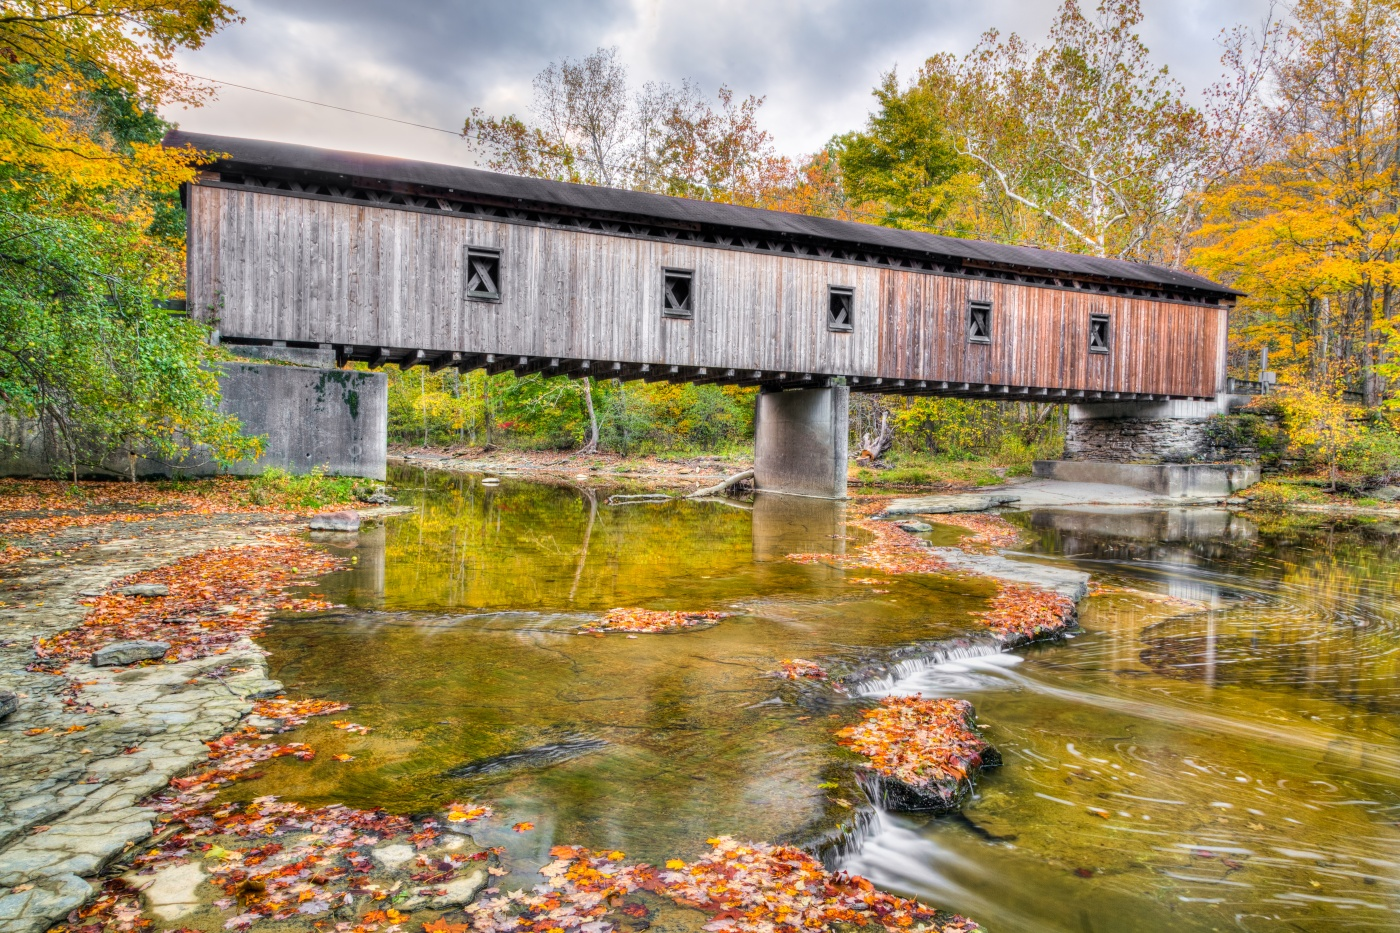 Historic Ohio Bridge, with a flowing river